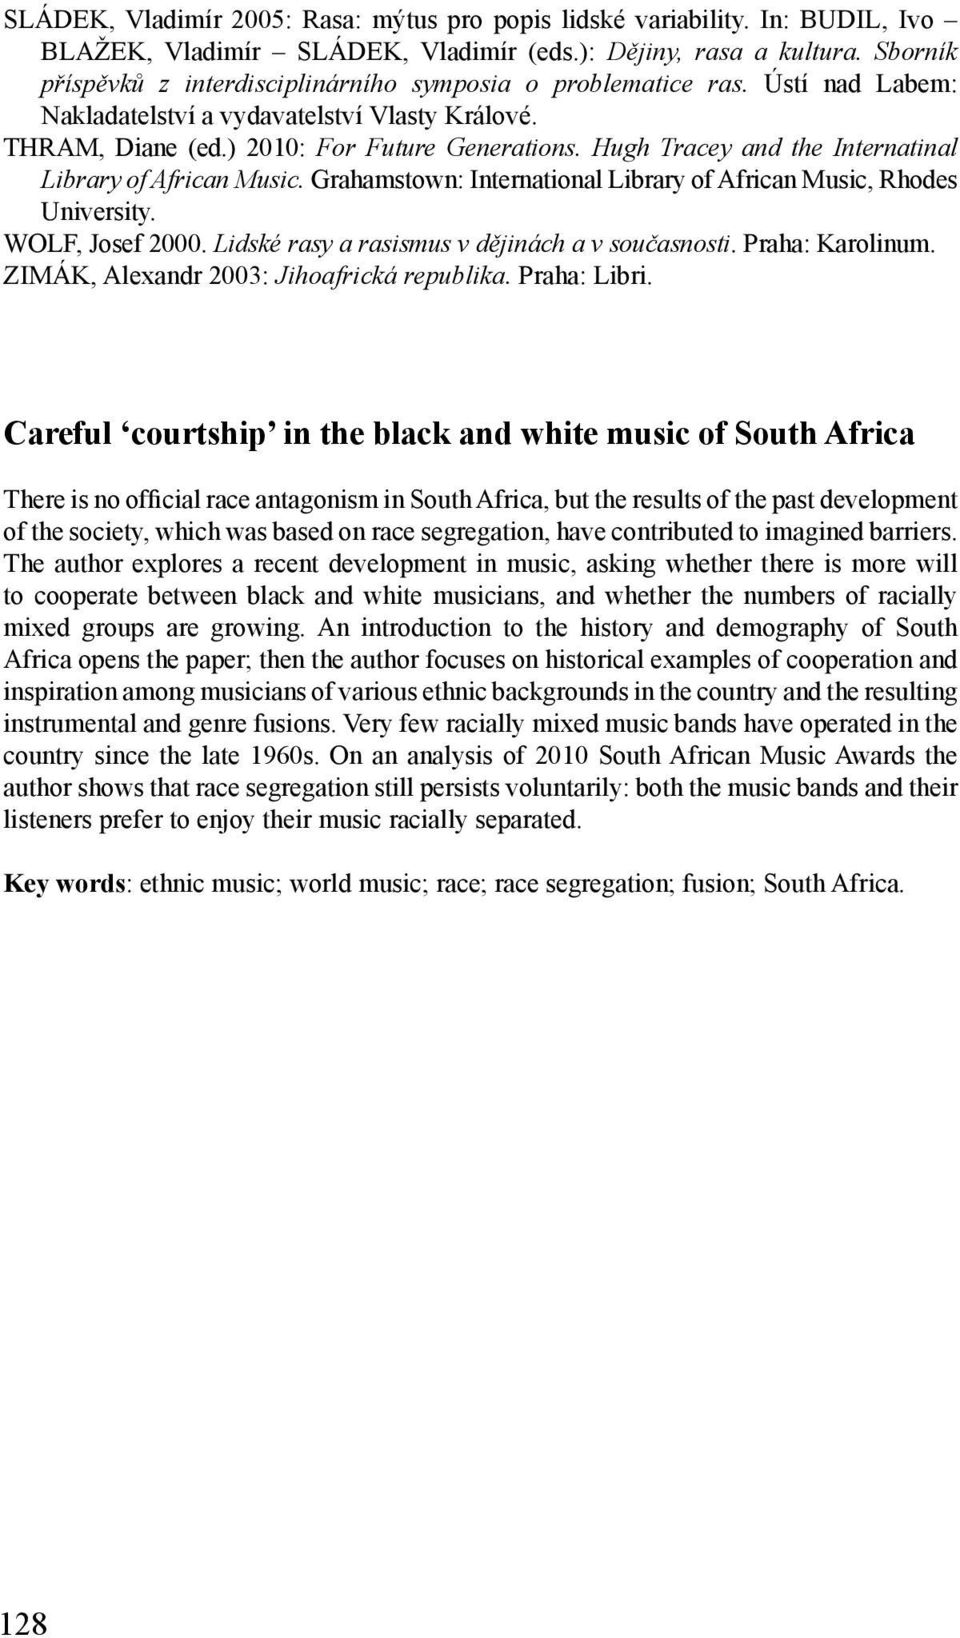 Hugh Tracey and the Internatinal Library of African Music. Grahamstown: International Library of African Music, Rhodes University. WOLF, Josef 2000. Lidské rasy a rasismus v dějinách a v současnosti.